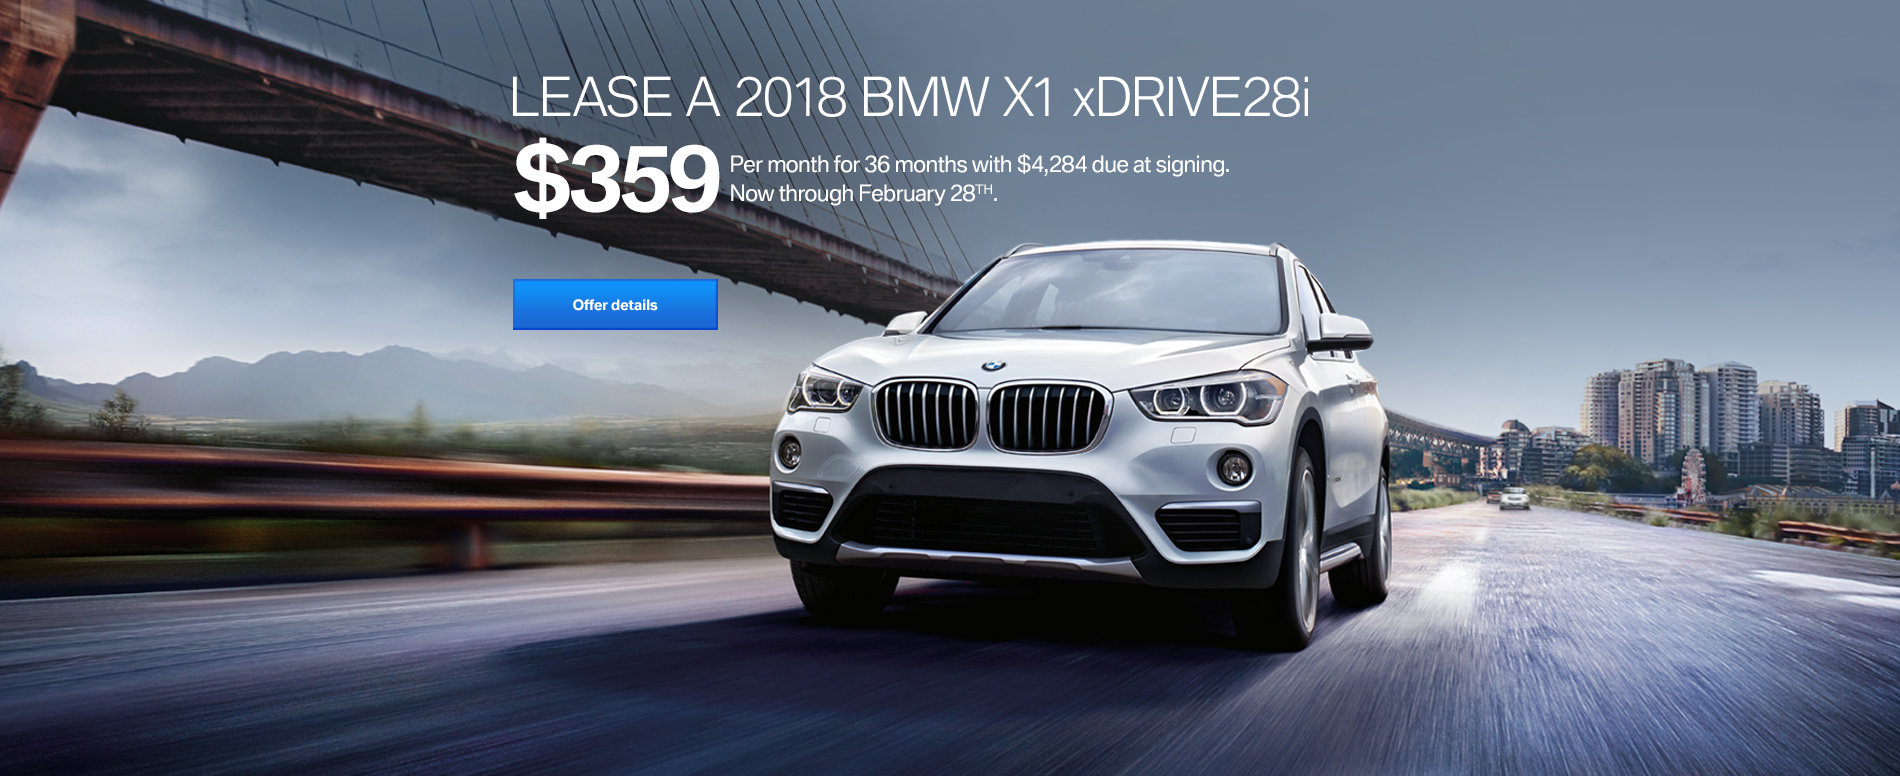 LEASE A 2018 BMW X1 xDRIVE28i FOR $359/MONTH FOR 36 MONTHS WITH